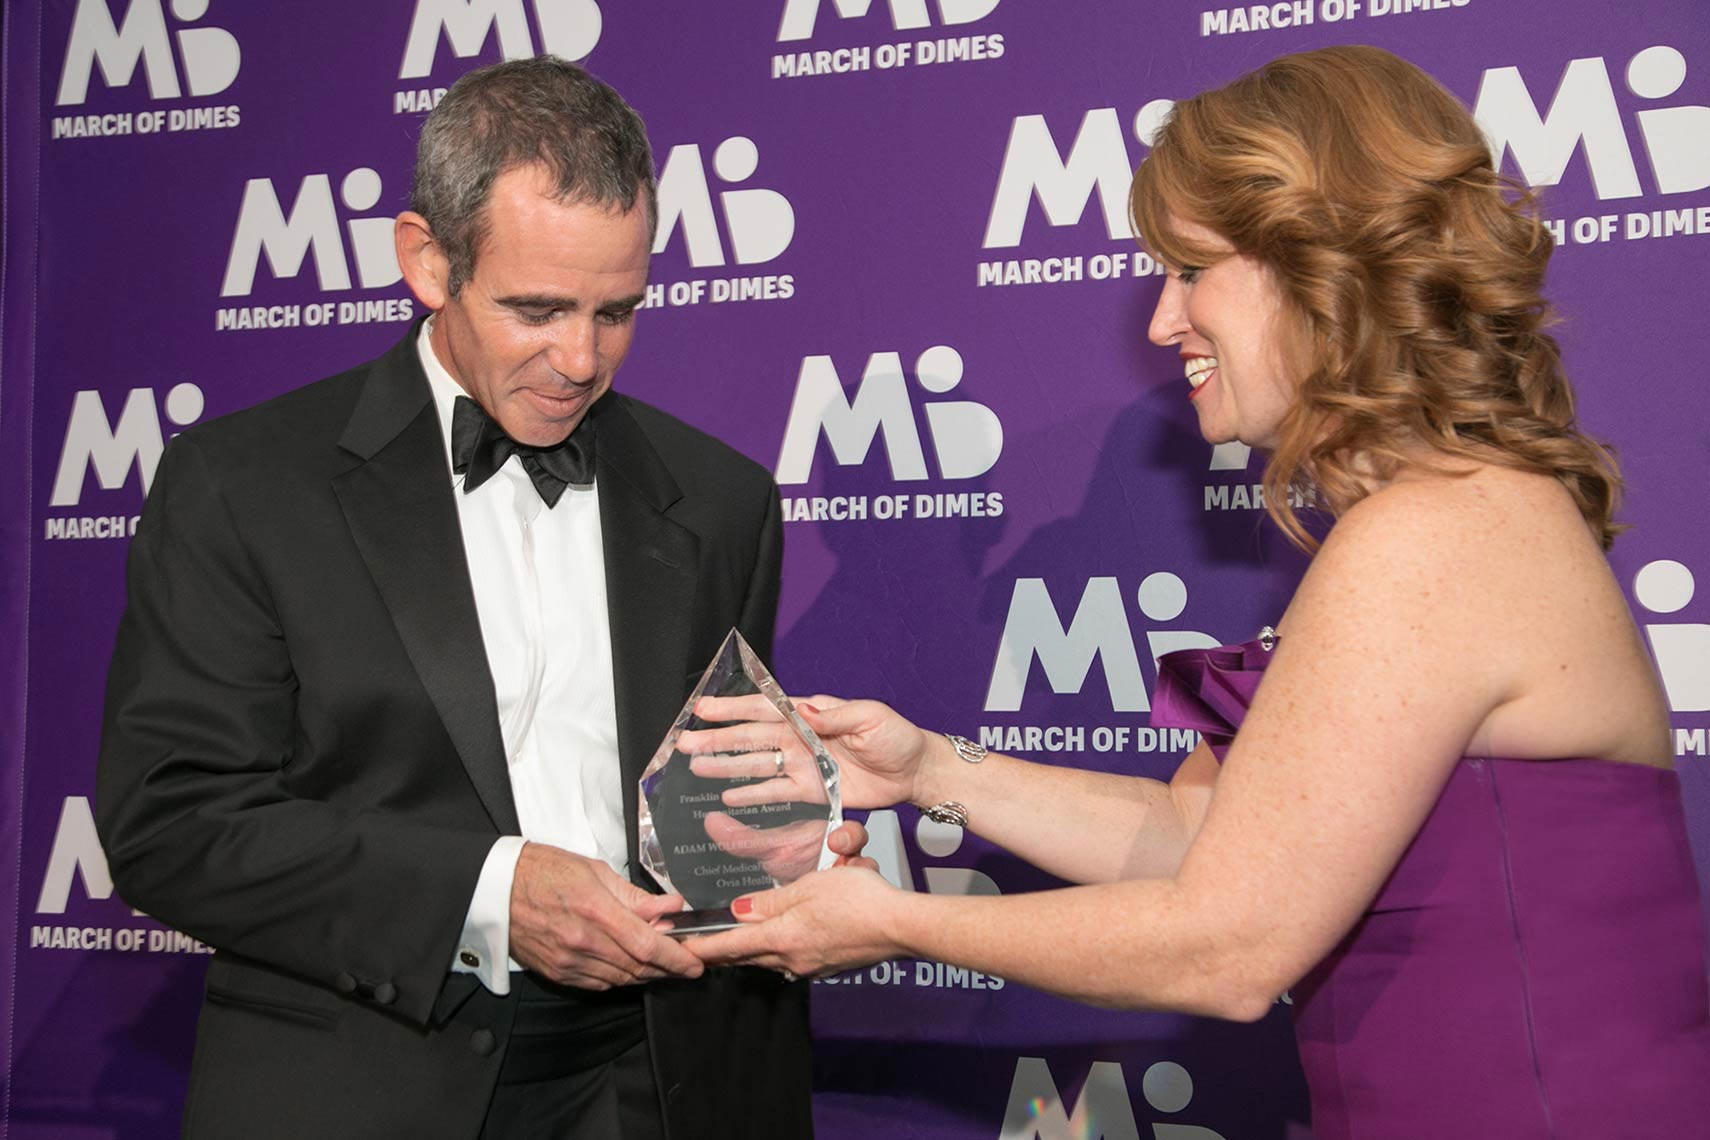 023-Dr-Wolfberg-receiving-the-March-of-Dimes-Humanitarian-Award-at-the-Black-Ties-for-Babies-gala